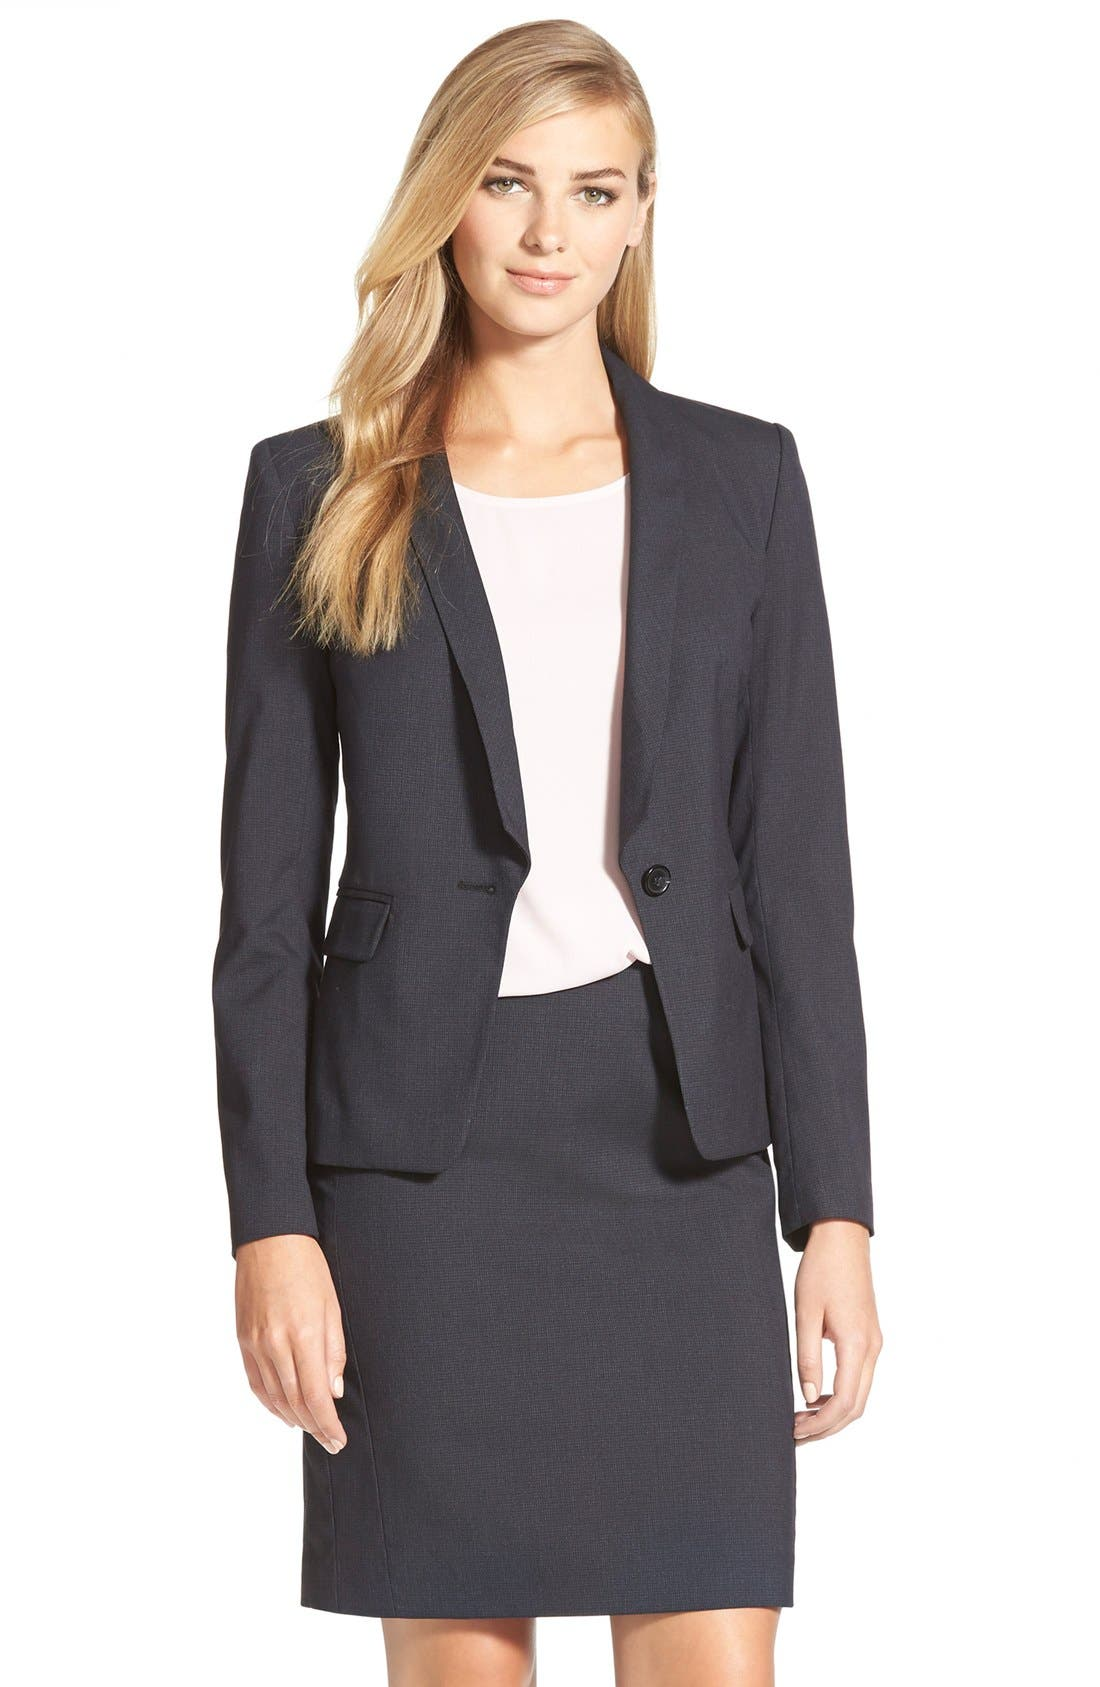 Alternate Image 1 Selected - Halogen® Crosshatch Suit Jacket (Regular & Petite)